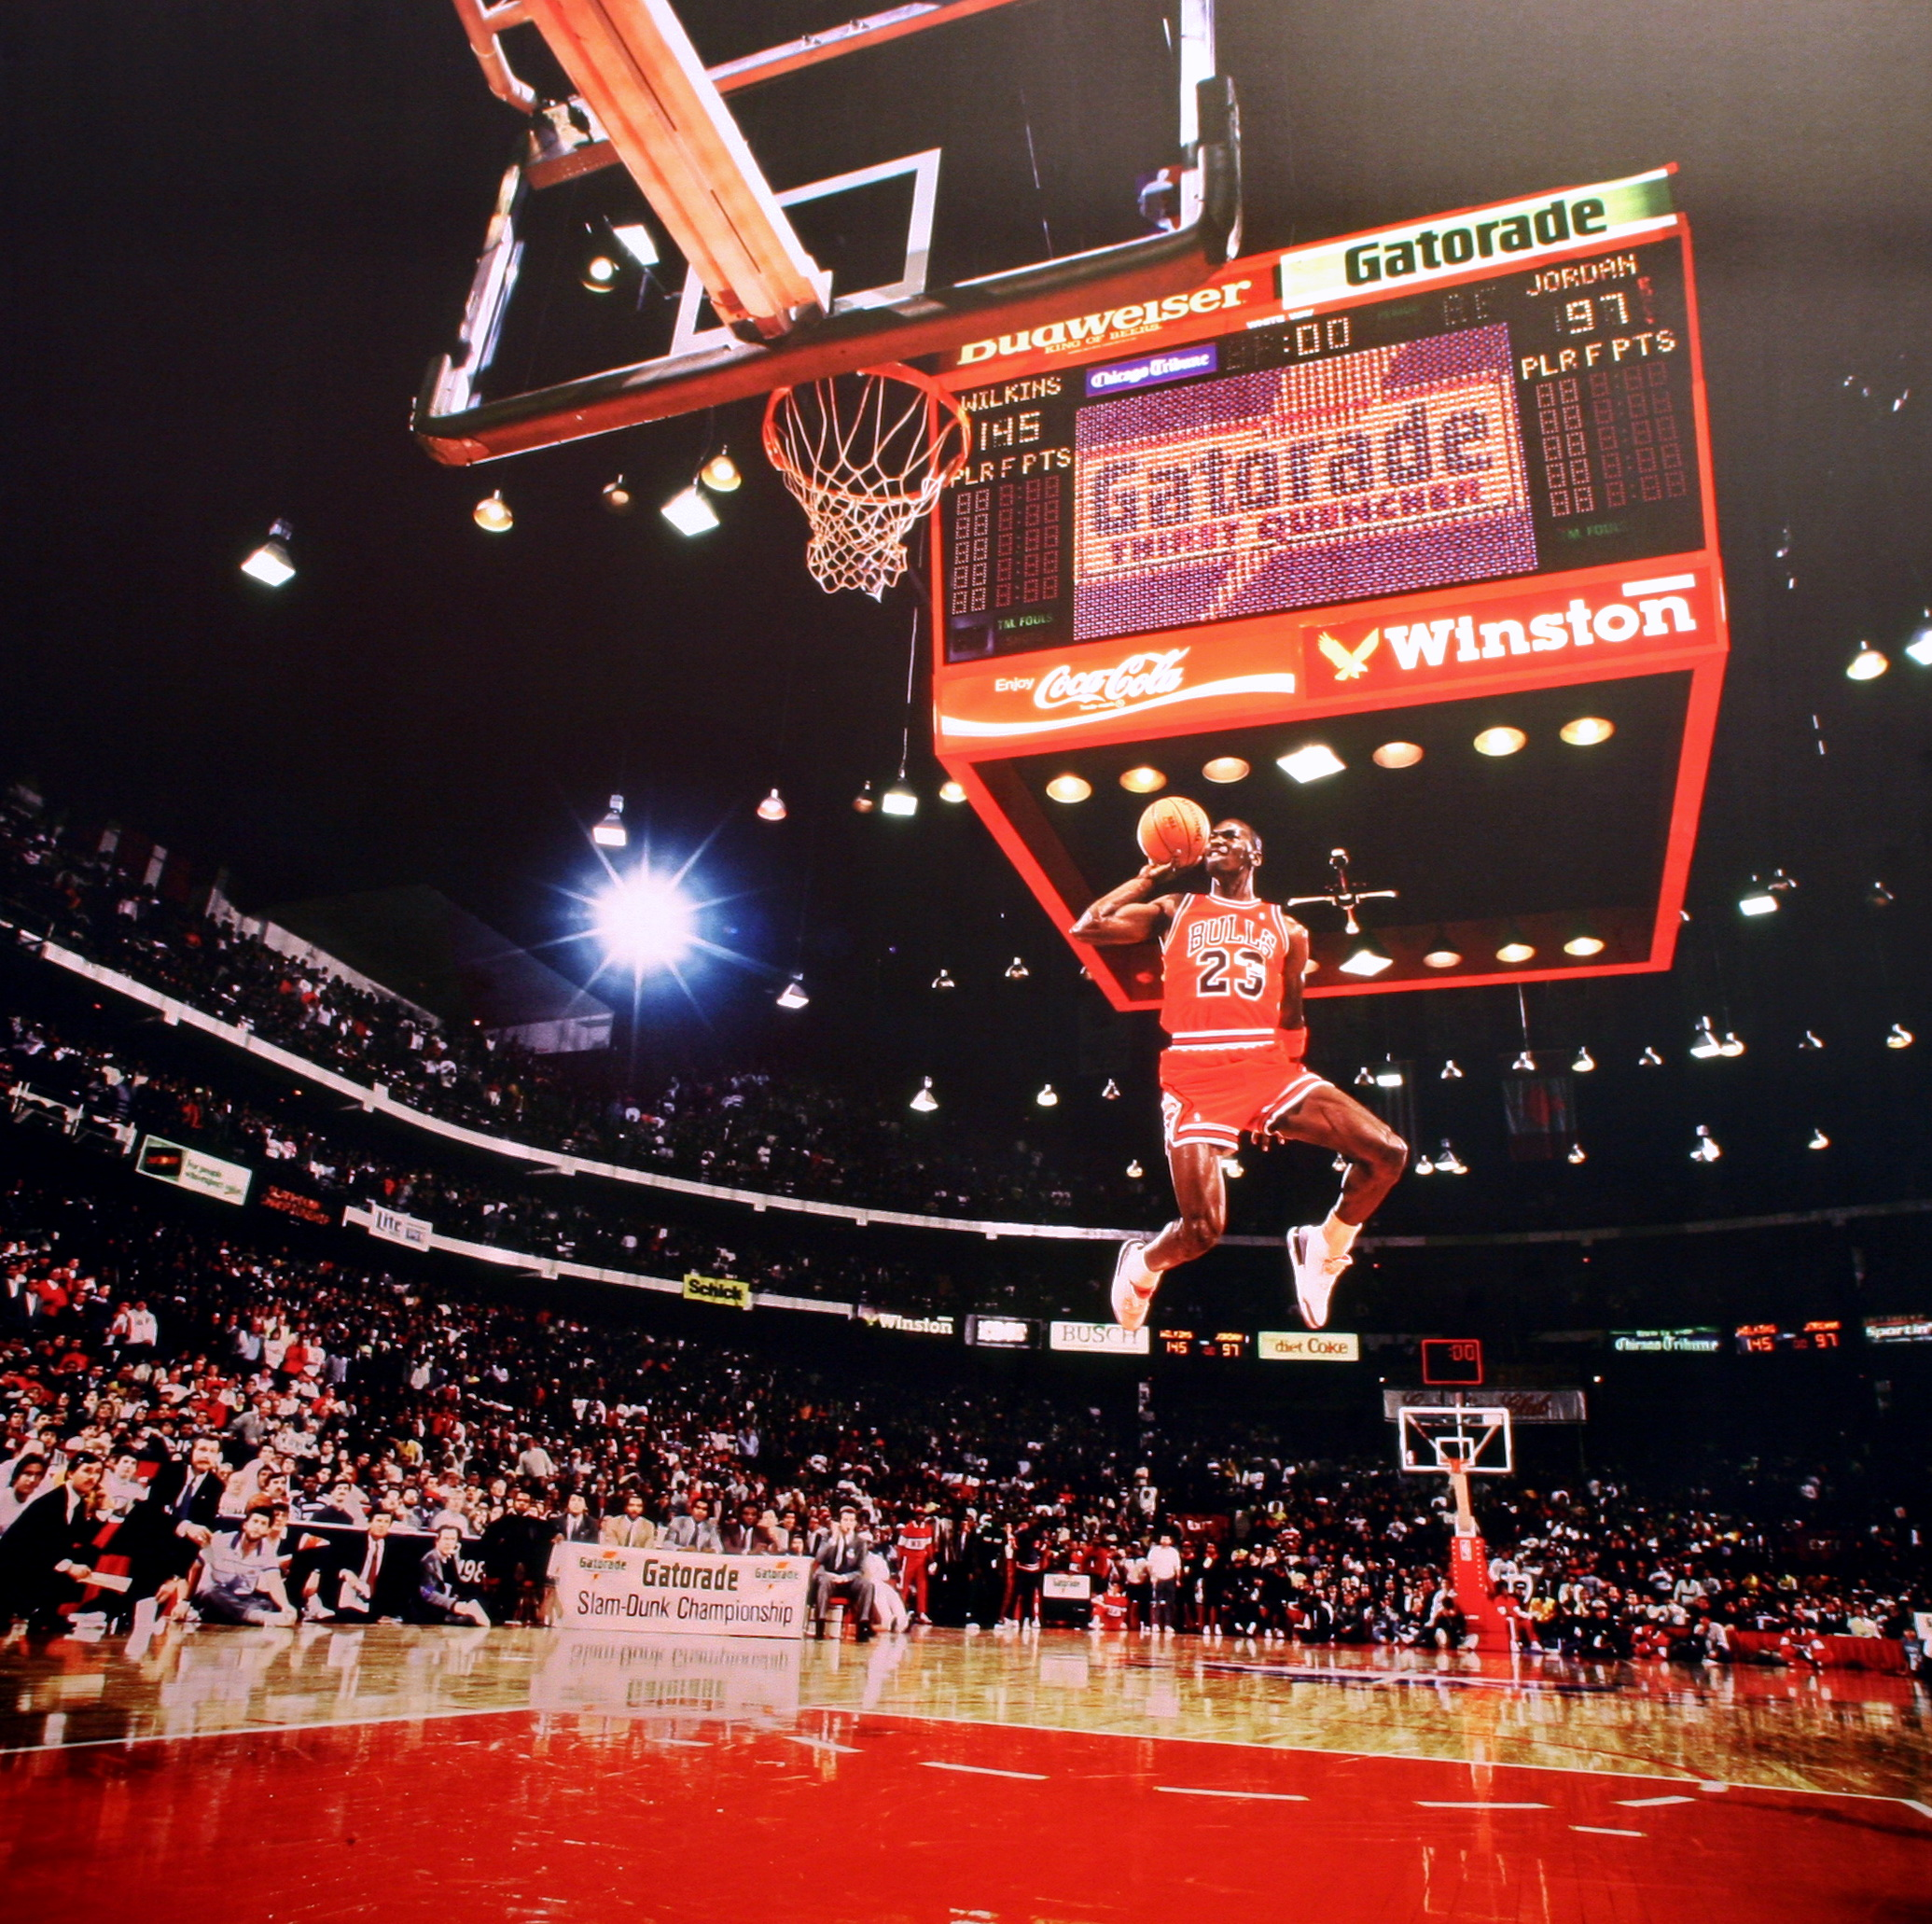 Knight Basketball Player Wallpaper: Michael Jordan, Slamdunk Contest, Chicago, IL